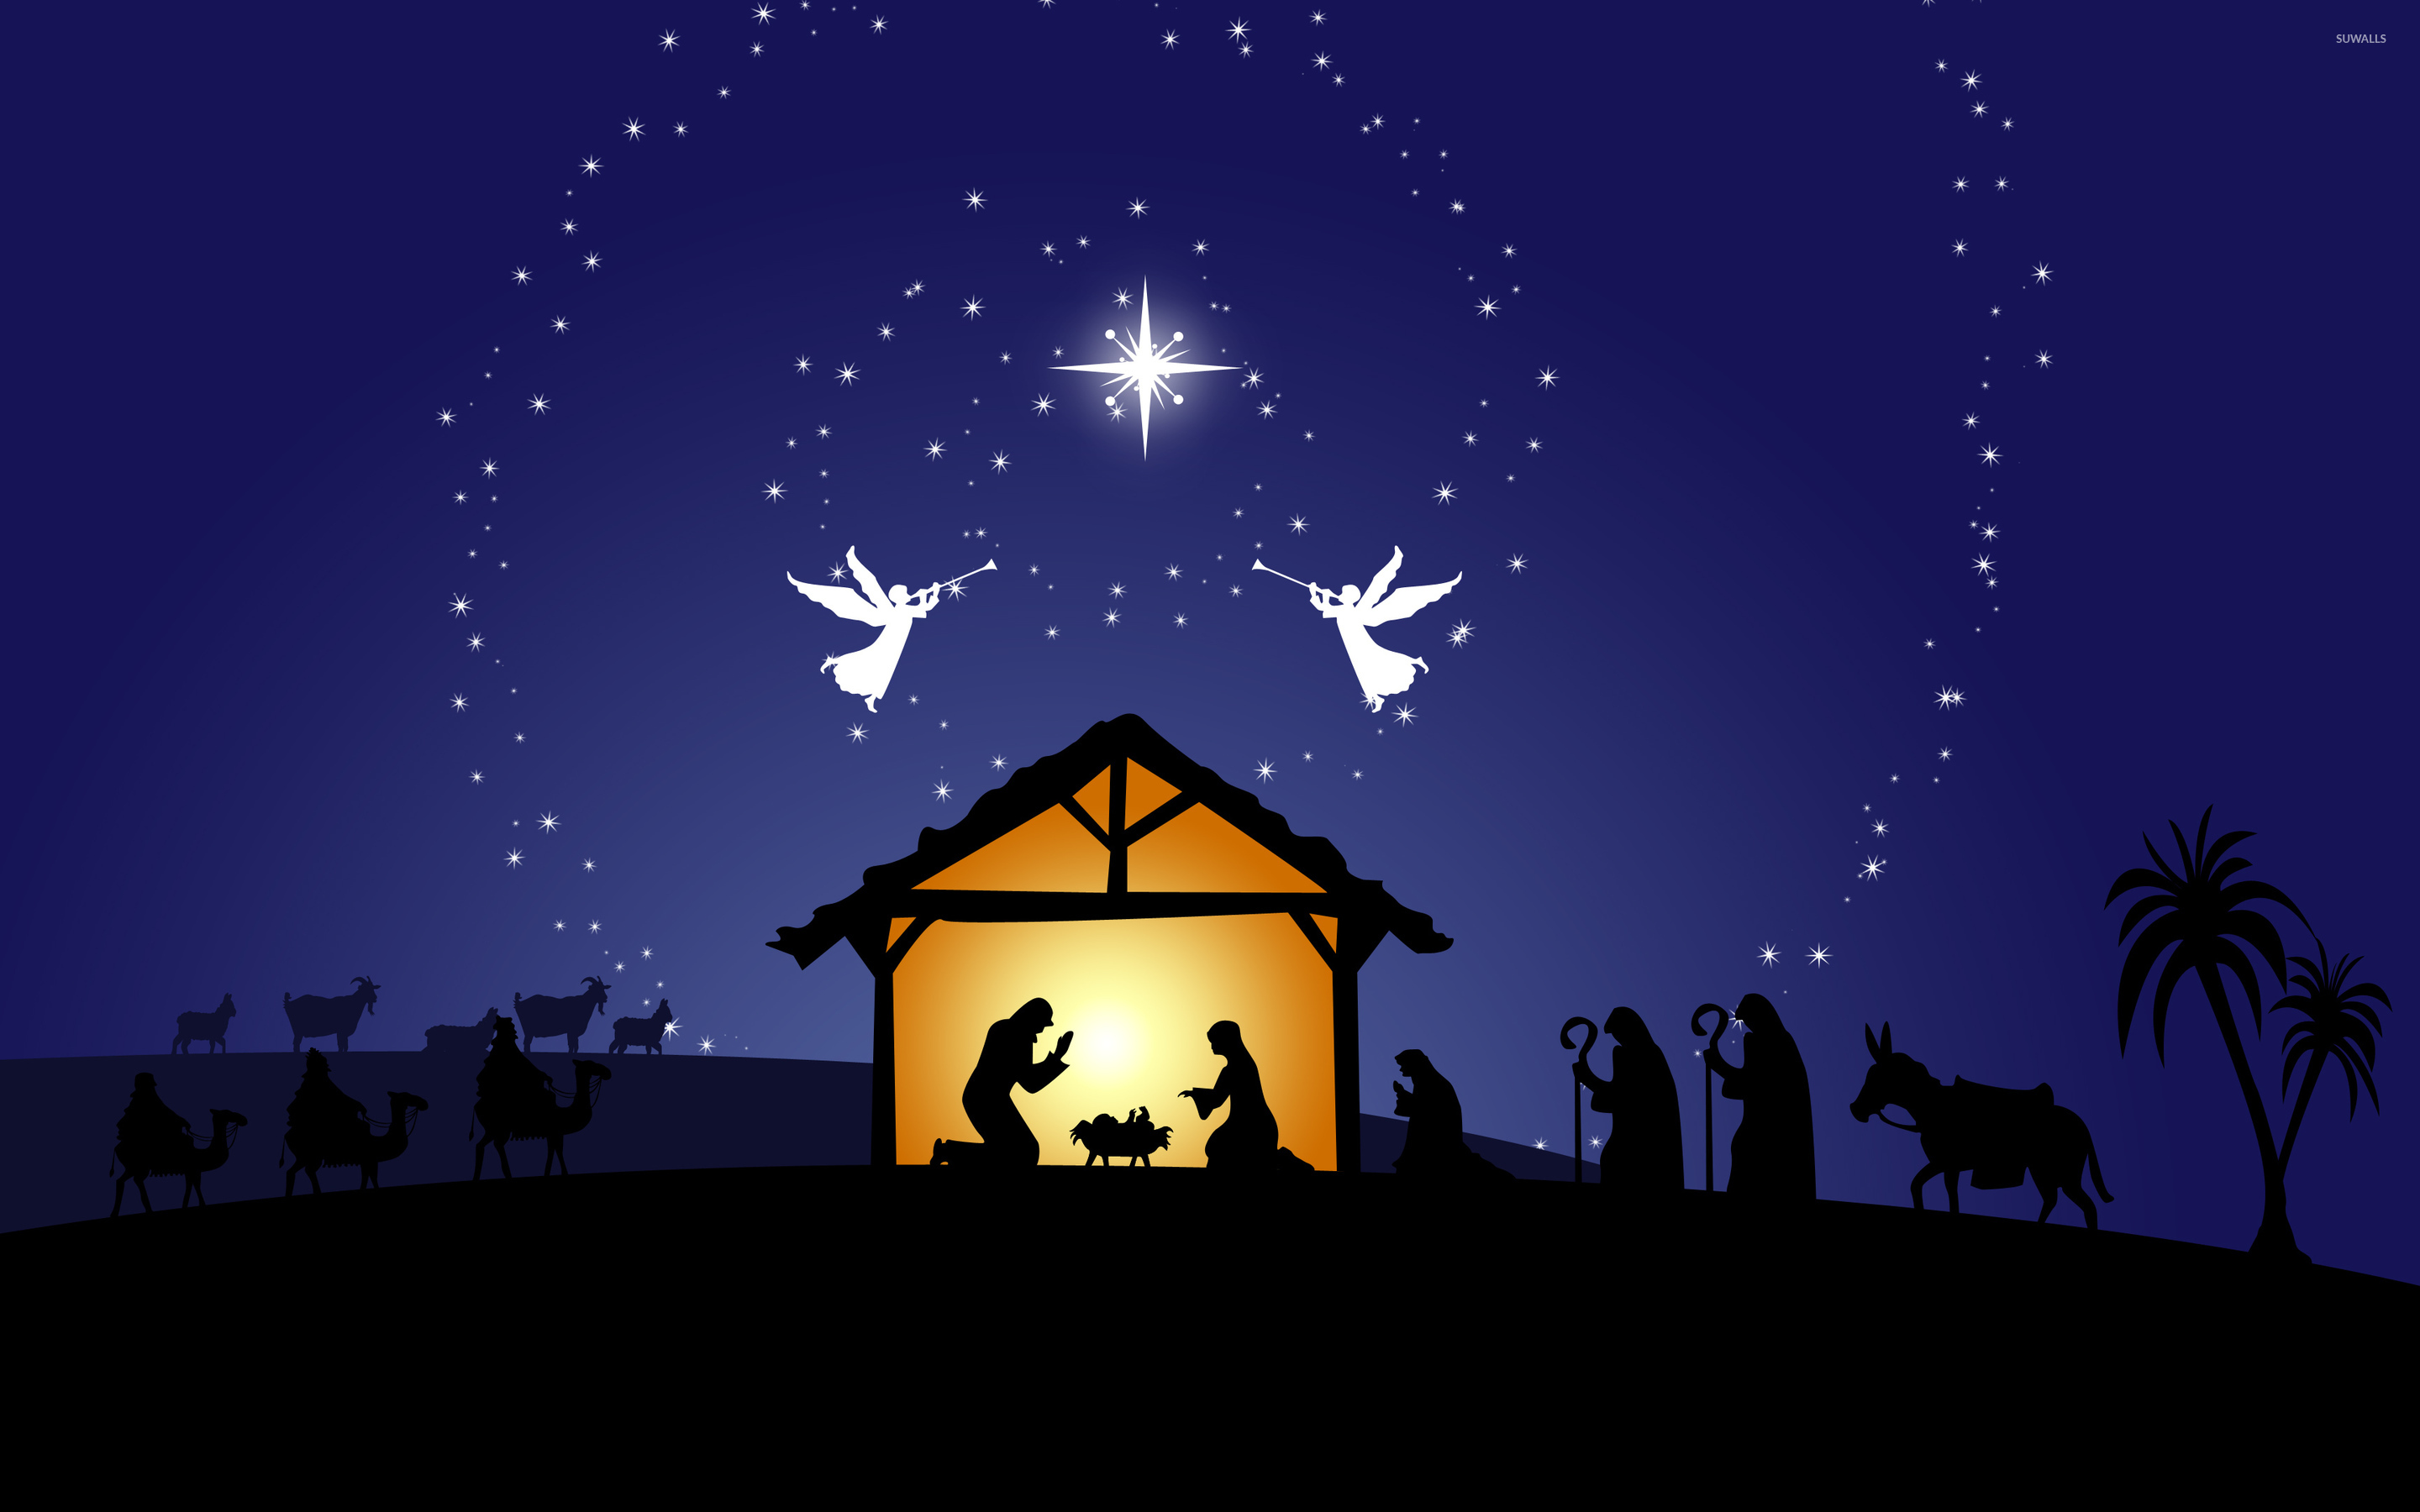 nativity scene wallpaper holiday wallpapers 50278